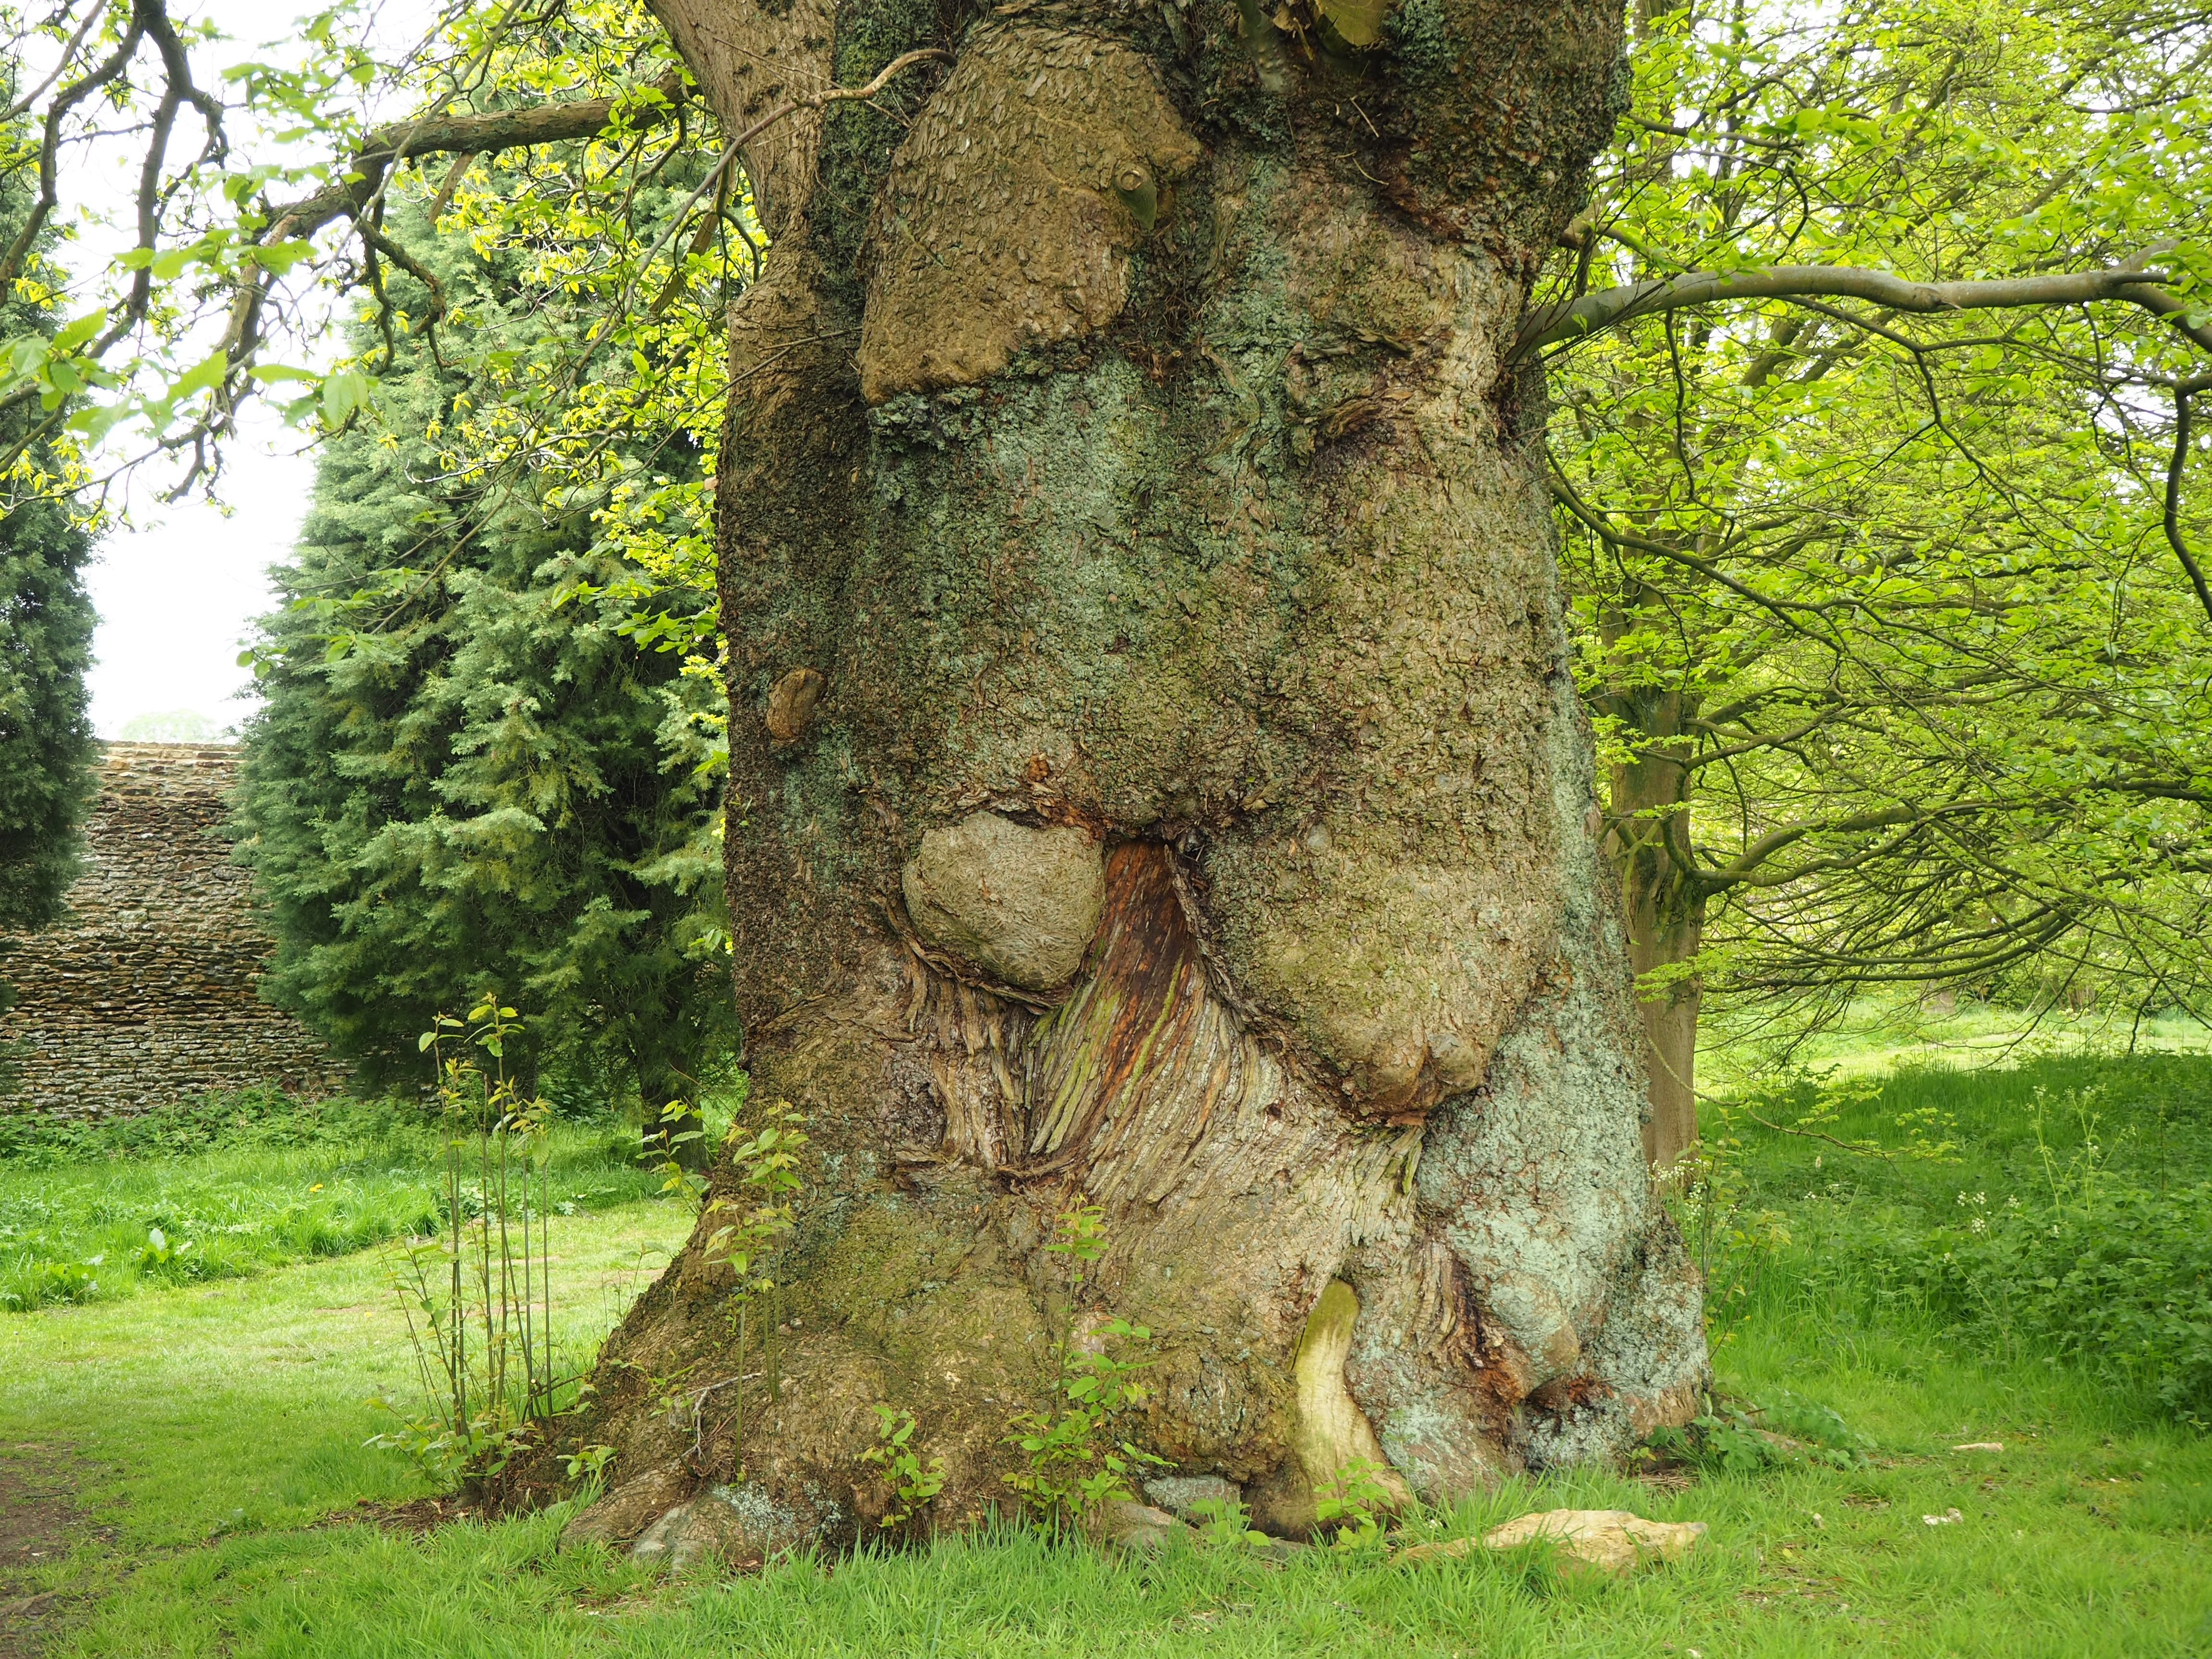 Ancient chestnut tree trunk